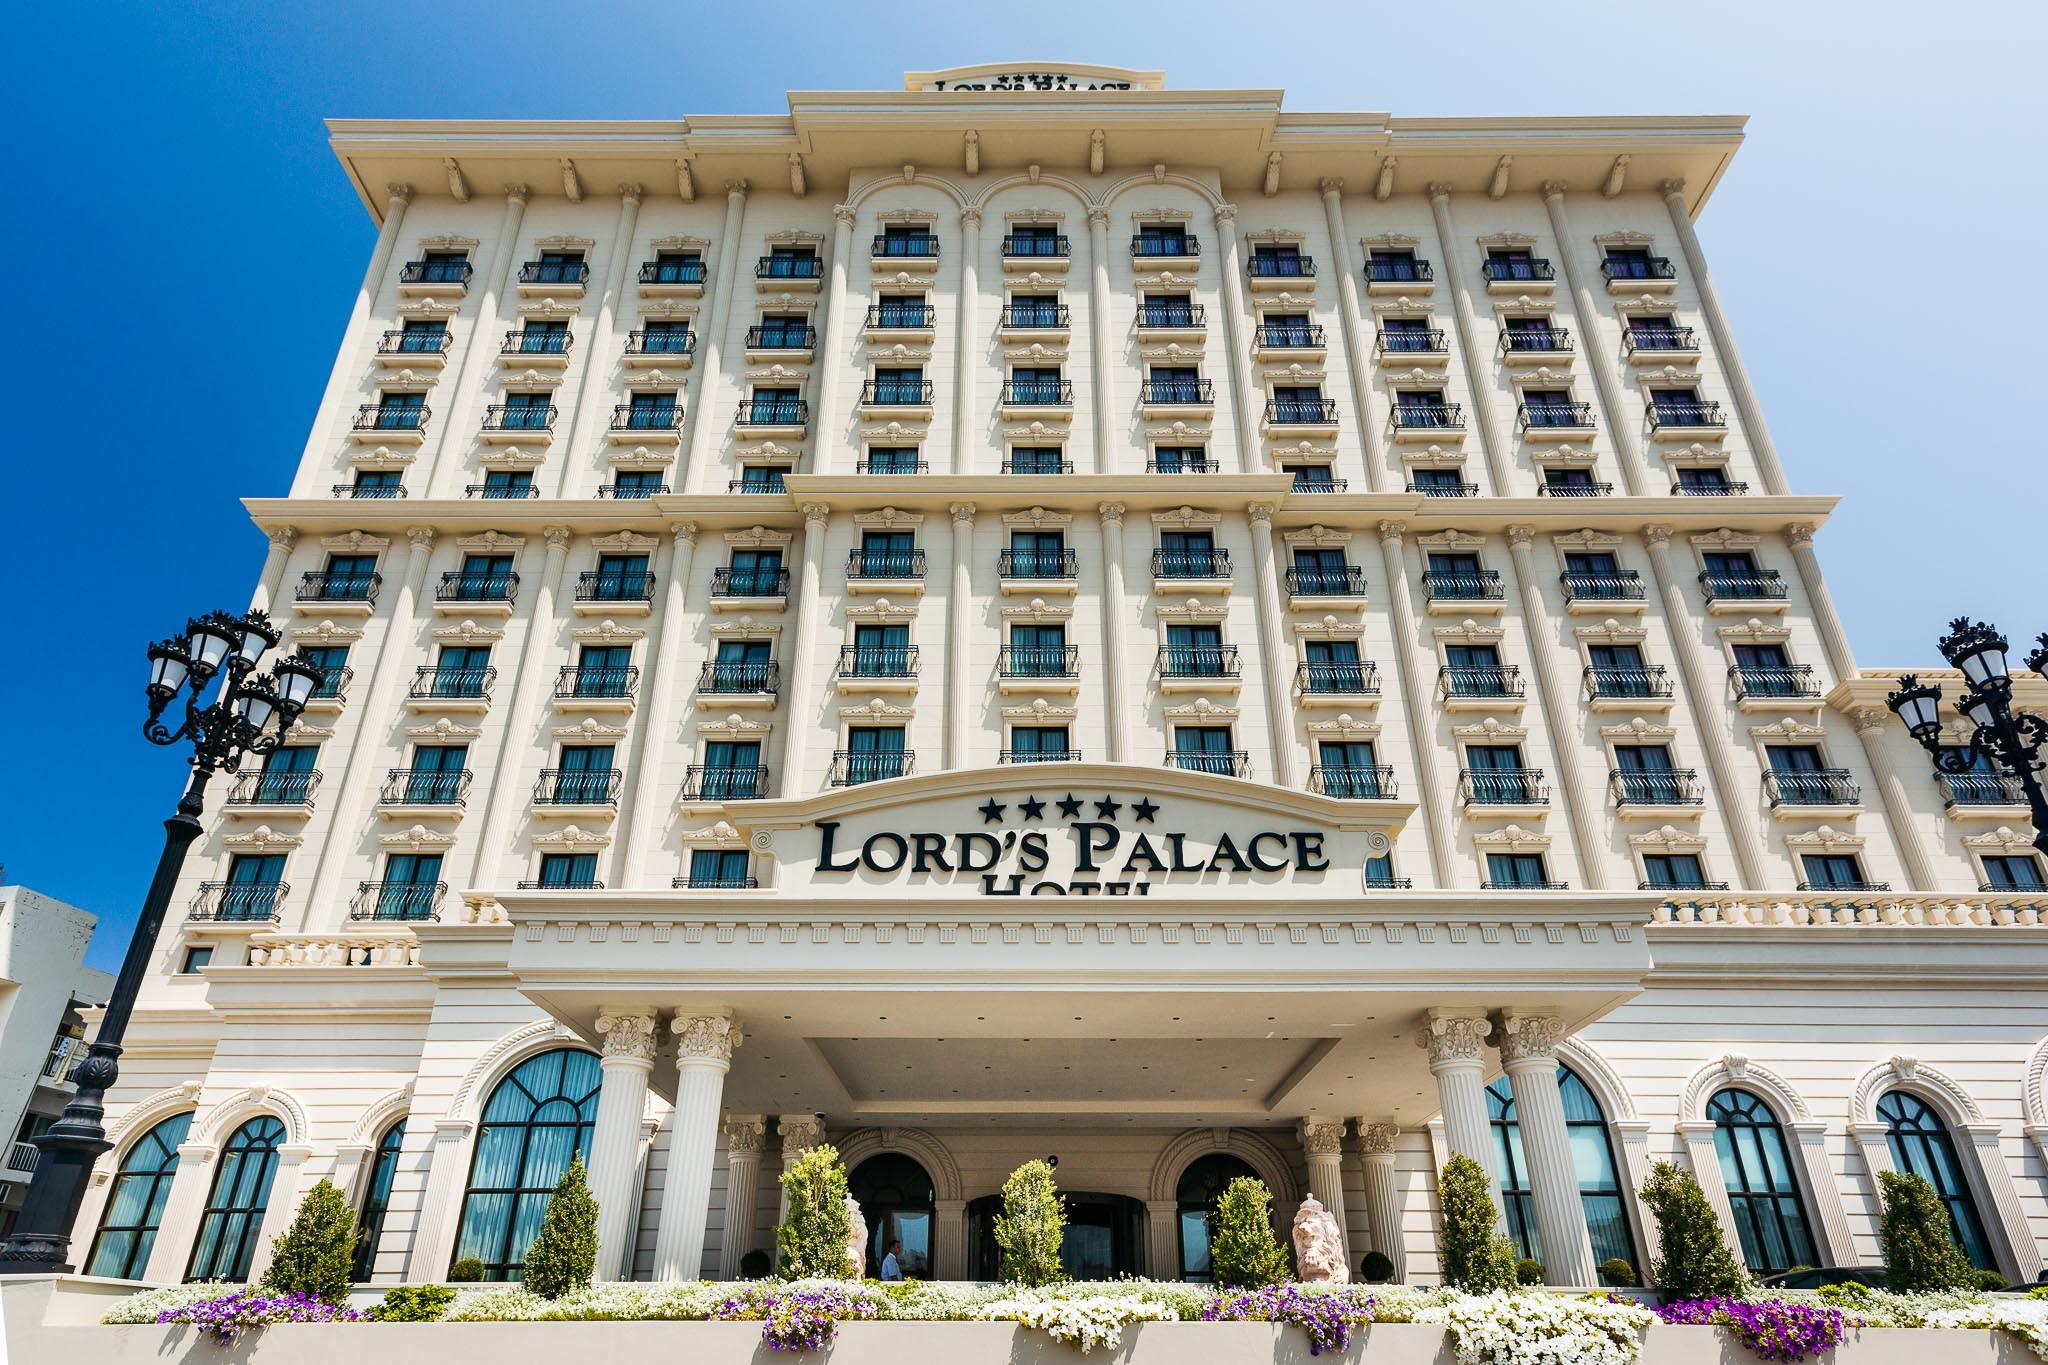 ZIMA 2018: Lord's Palace*****, 7 dni (16-23.02.2018 r.), all inclusive soft: 2469,00 PLN/osoba